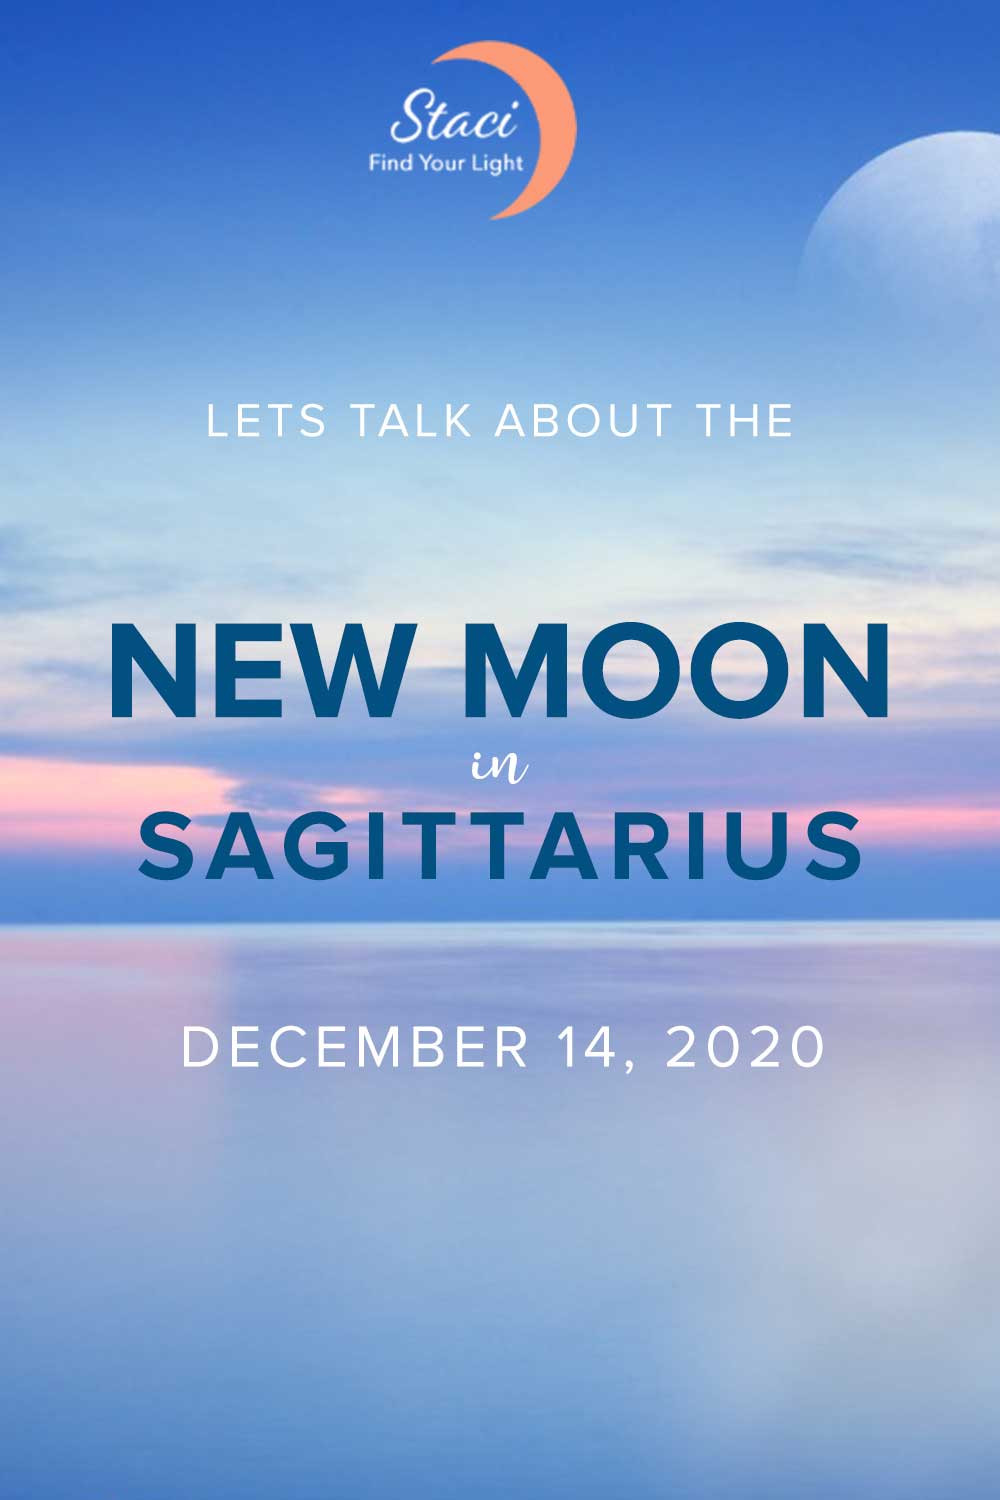 New Moon in Sagittarius, December 14, 2020